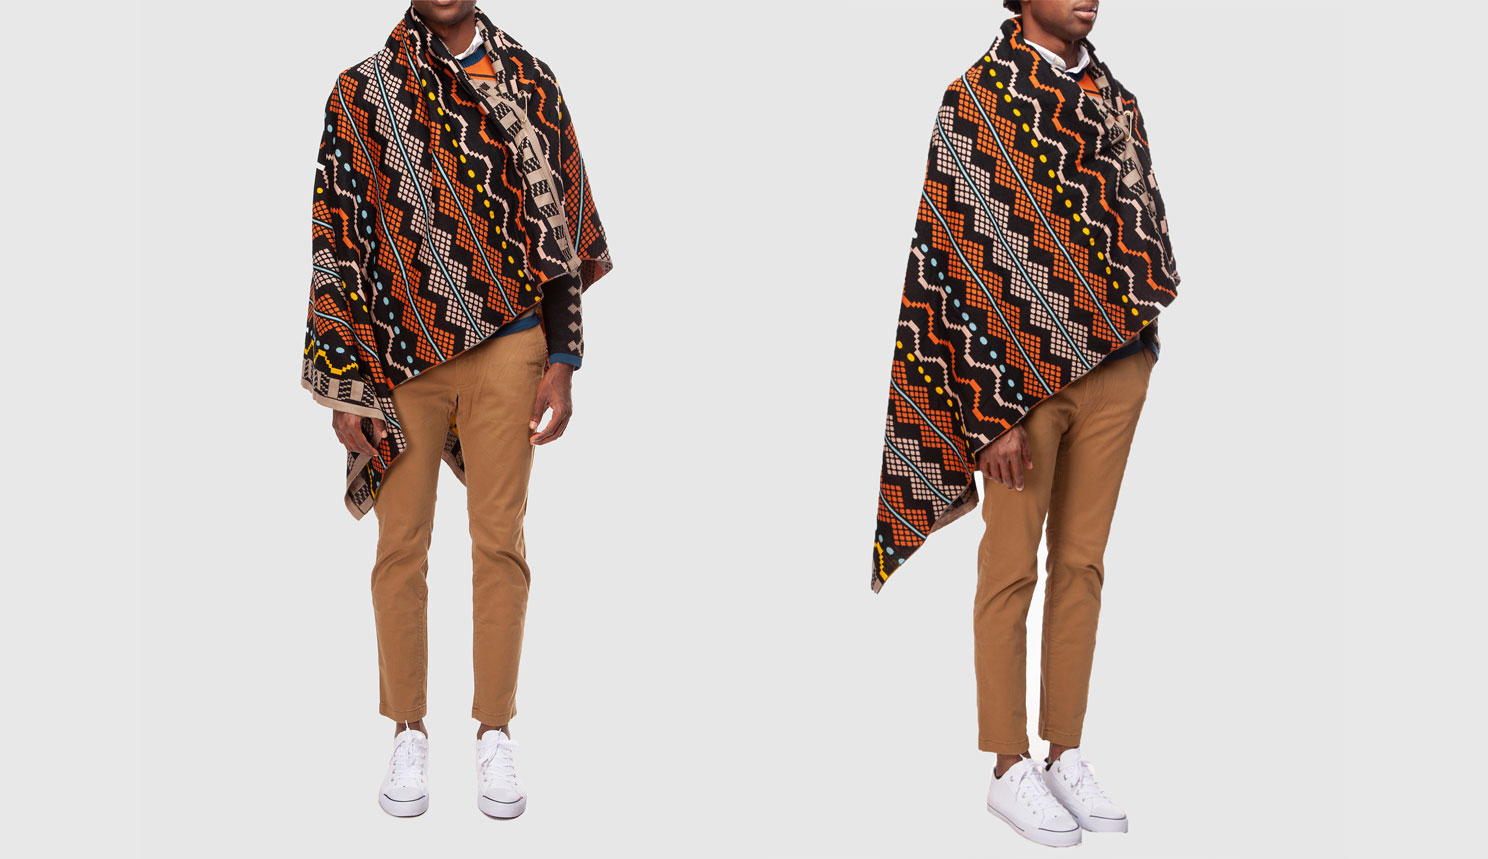 Onchek Shop Luxury Fashion From Africa